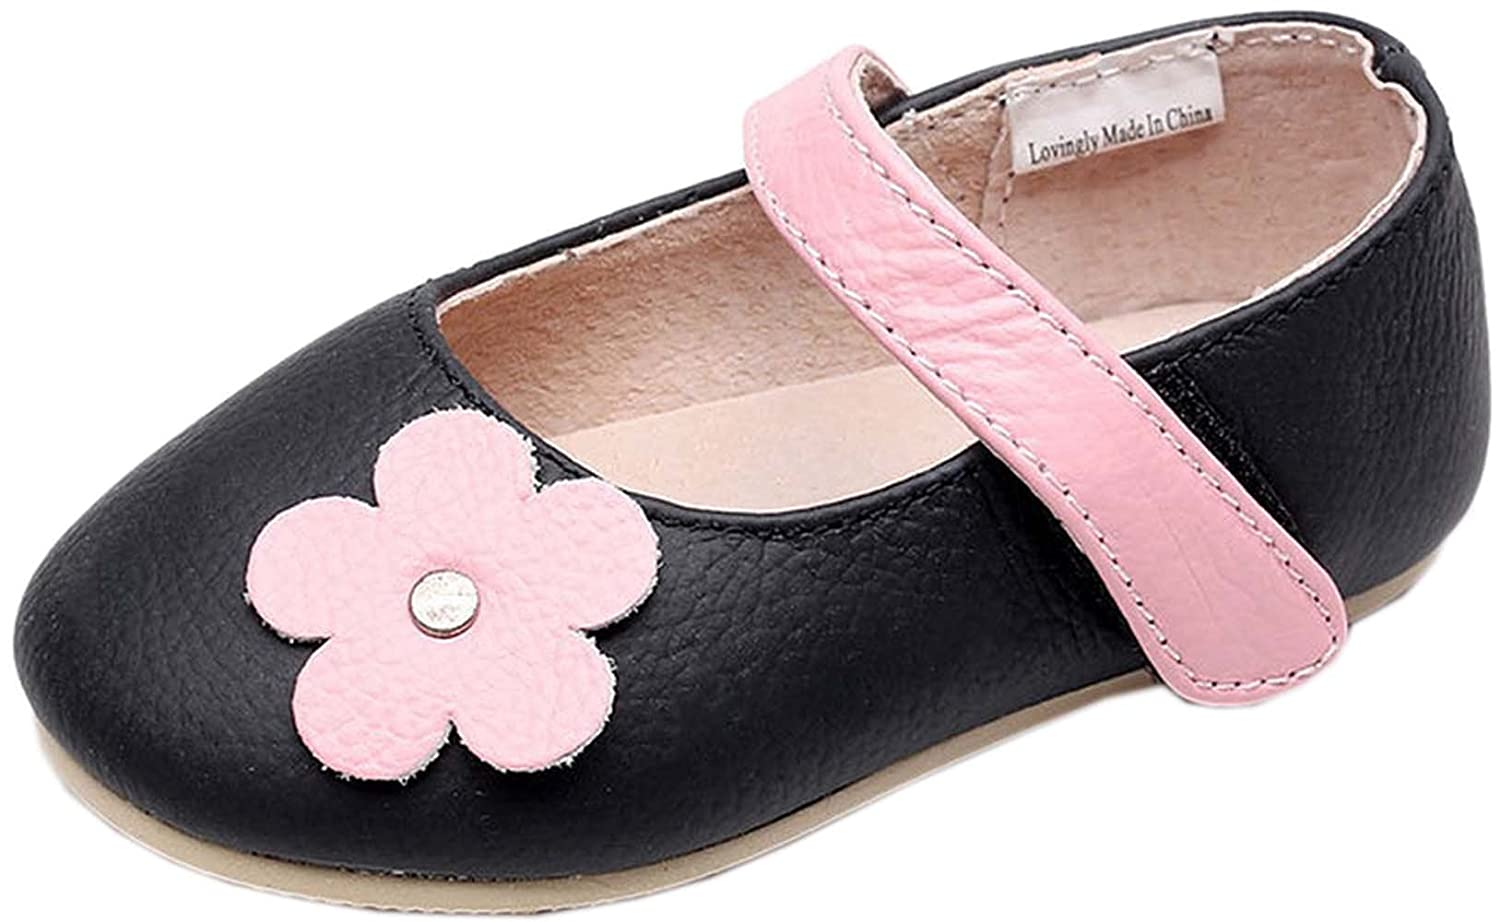 Jiazibb Baby Girls Lovely Velcro Genuine Cow Leather Flowers Toddler First Walkers Shoes Sneakers